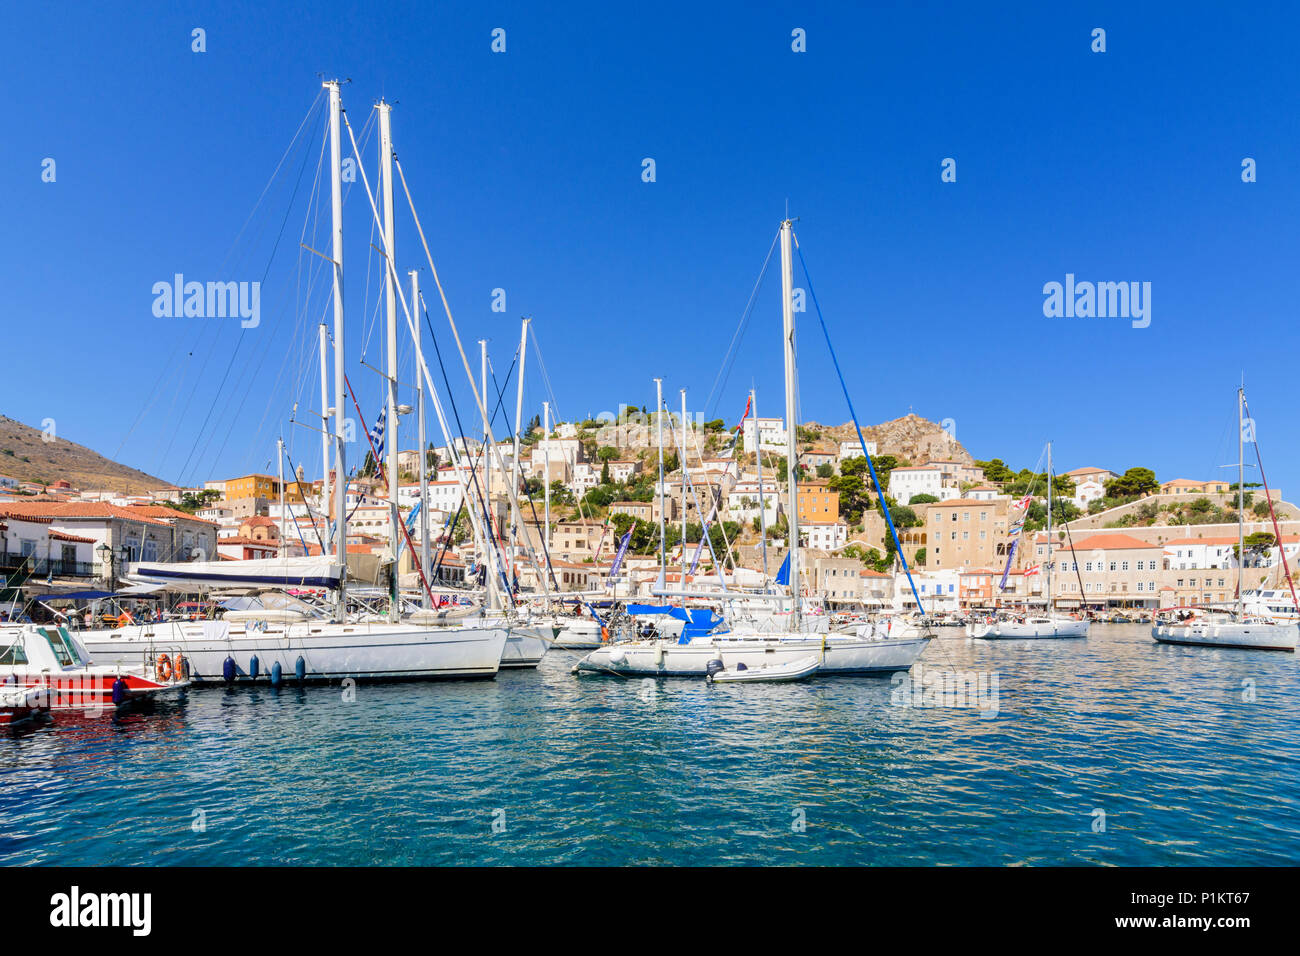 Hydra Town harbour filled yachts overlooked by the cafe lined waterfront, Hydra Island, Greece - Stock Image